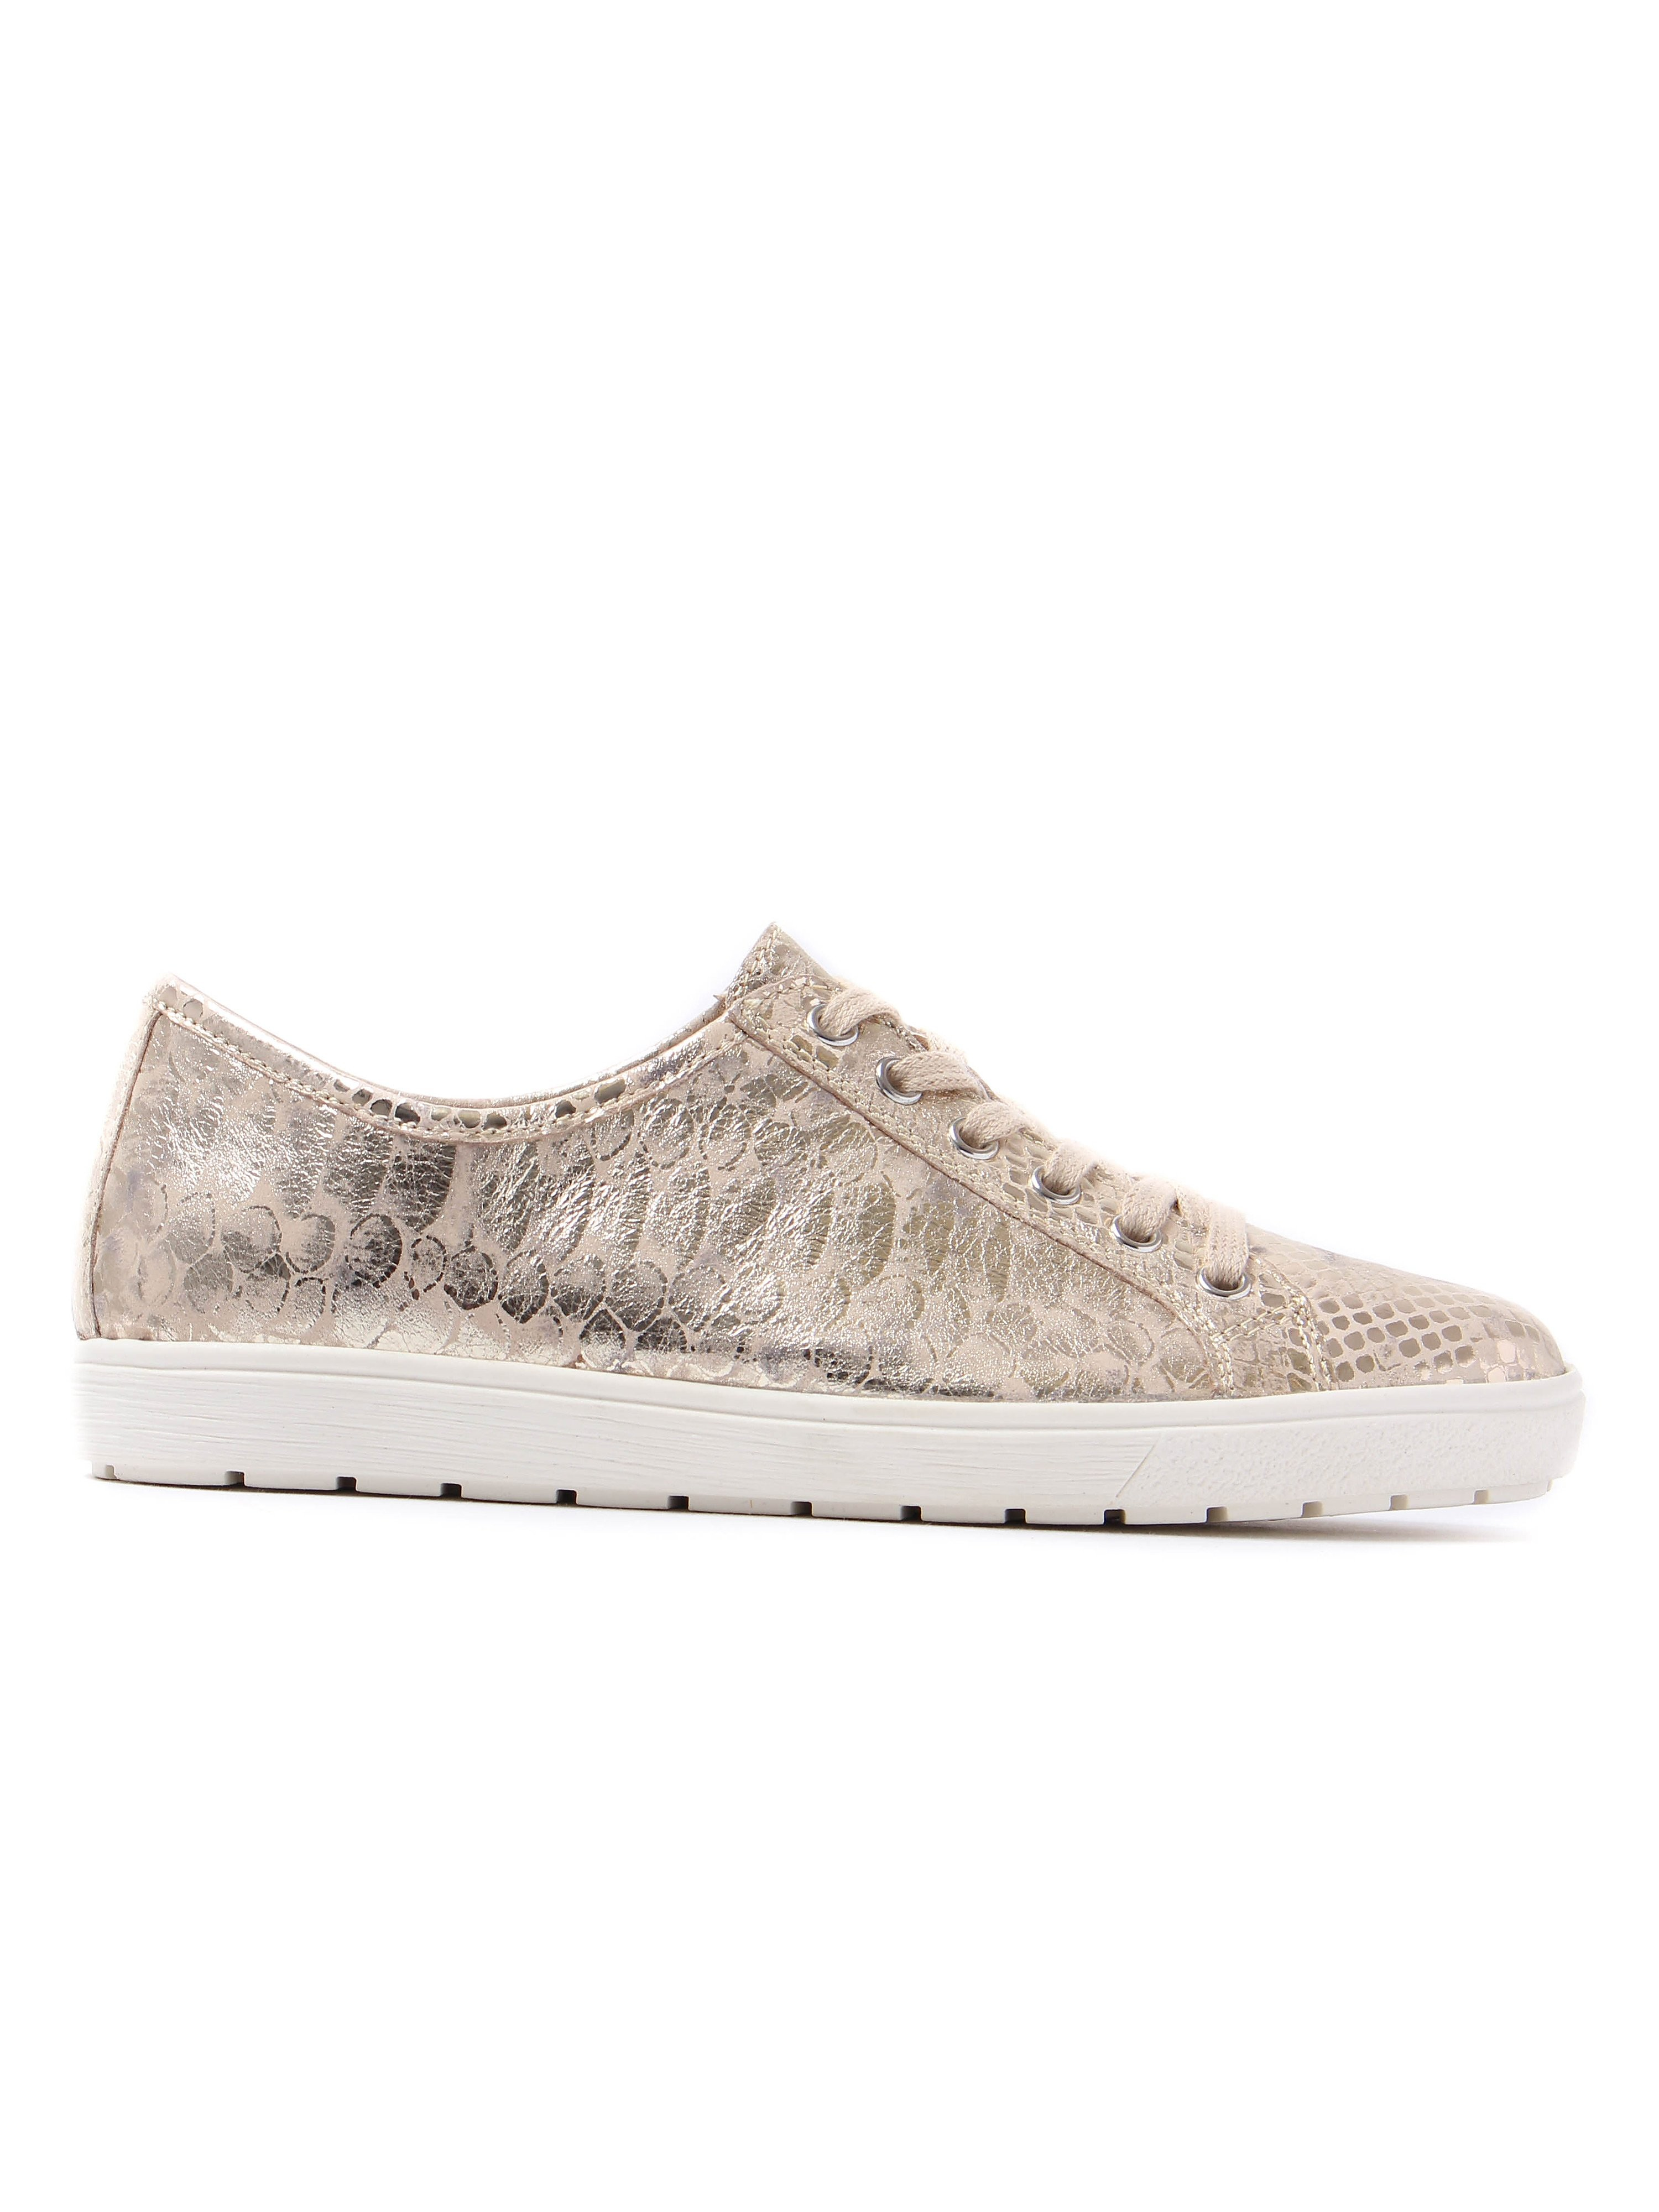 Caprice Women's Snake Effect Leather Trainers - Gold Metallic